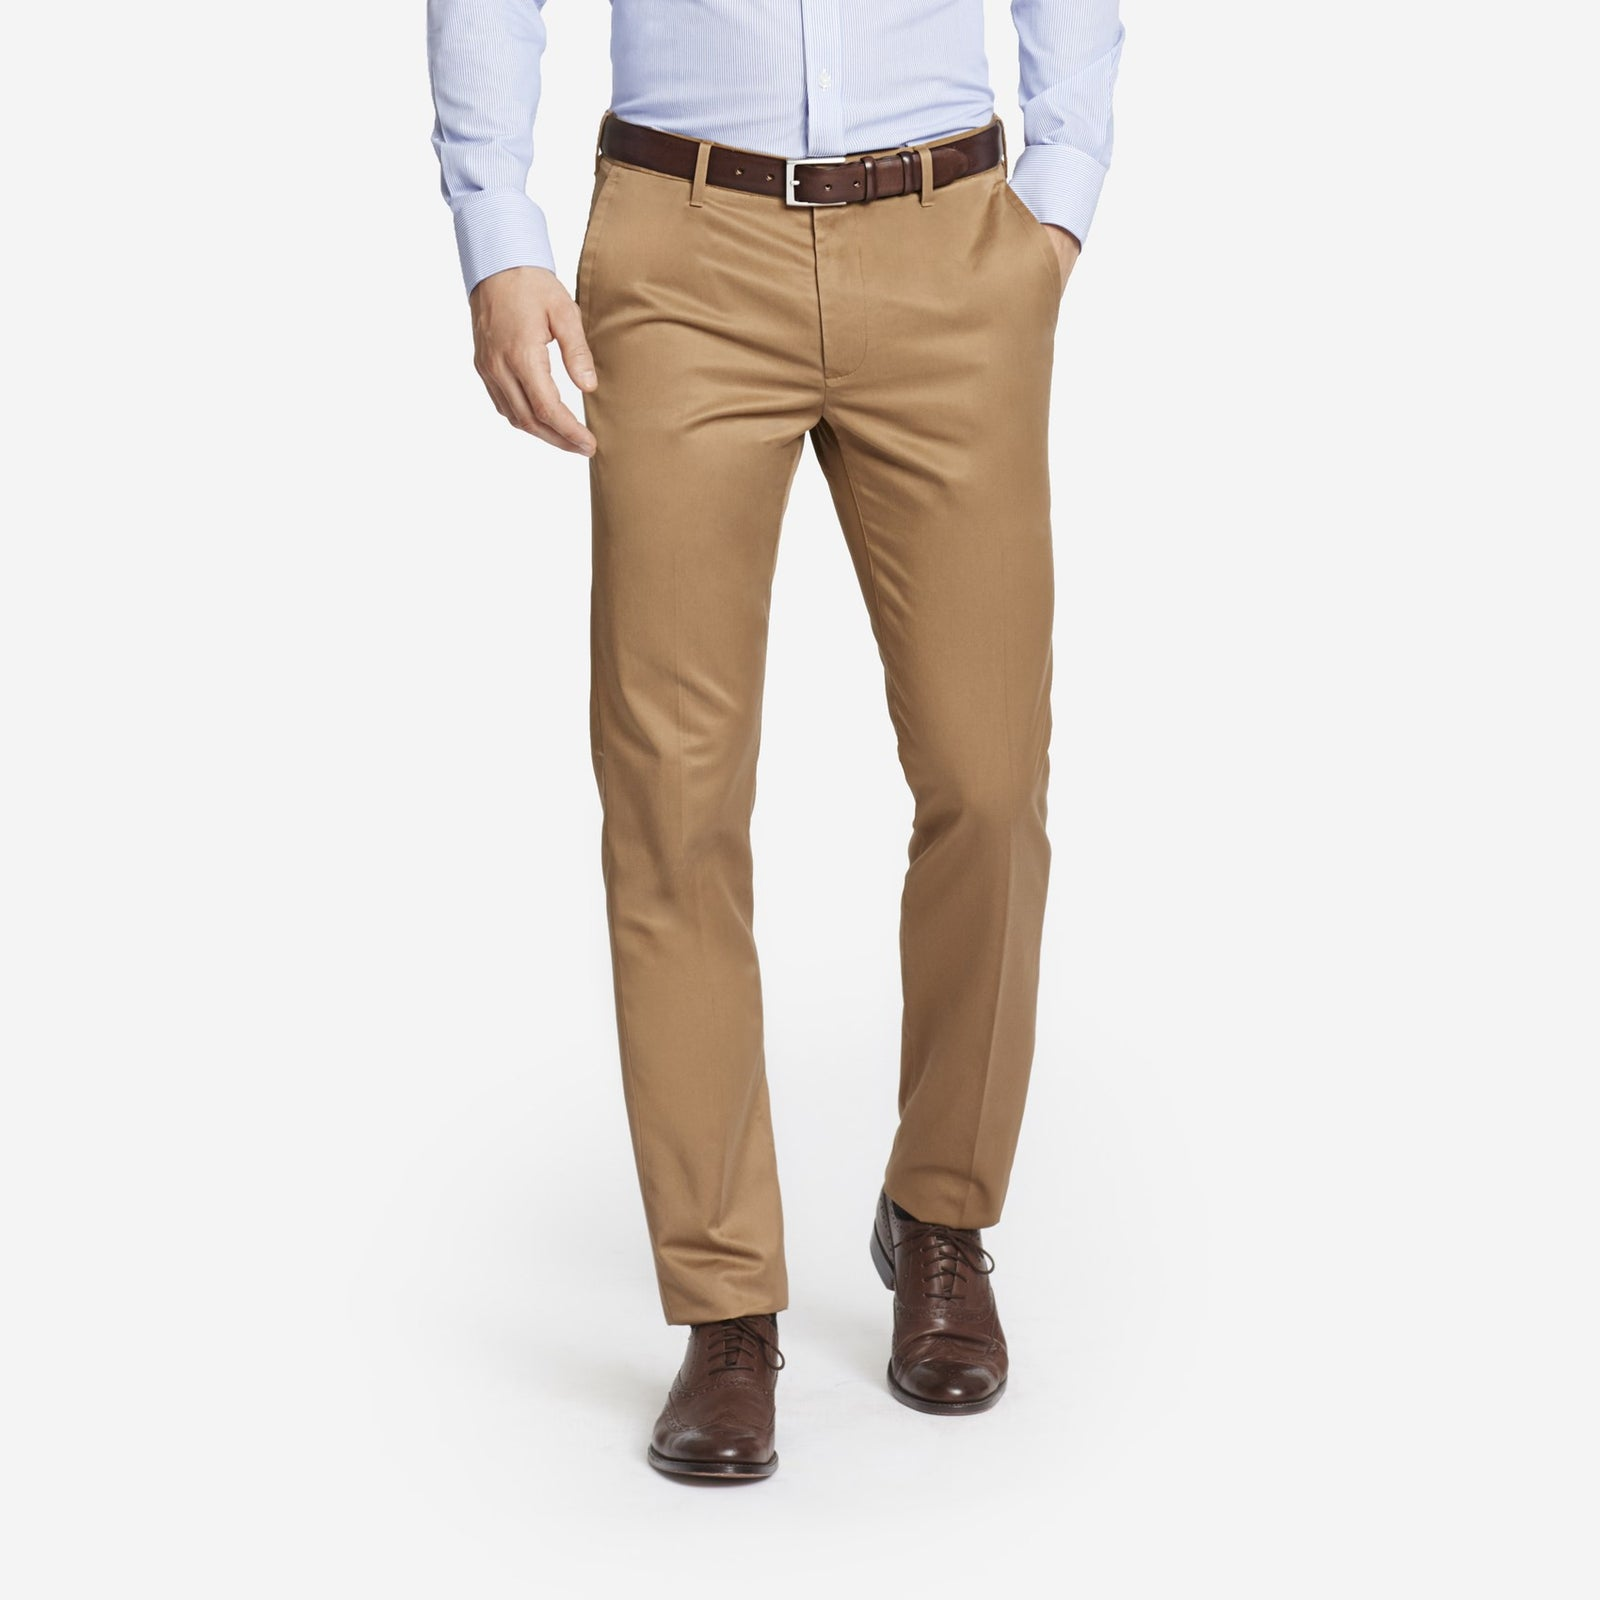 Khaki Bespoke Tailored Cotton Trousers